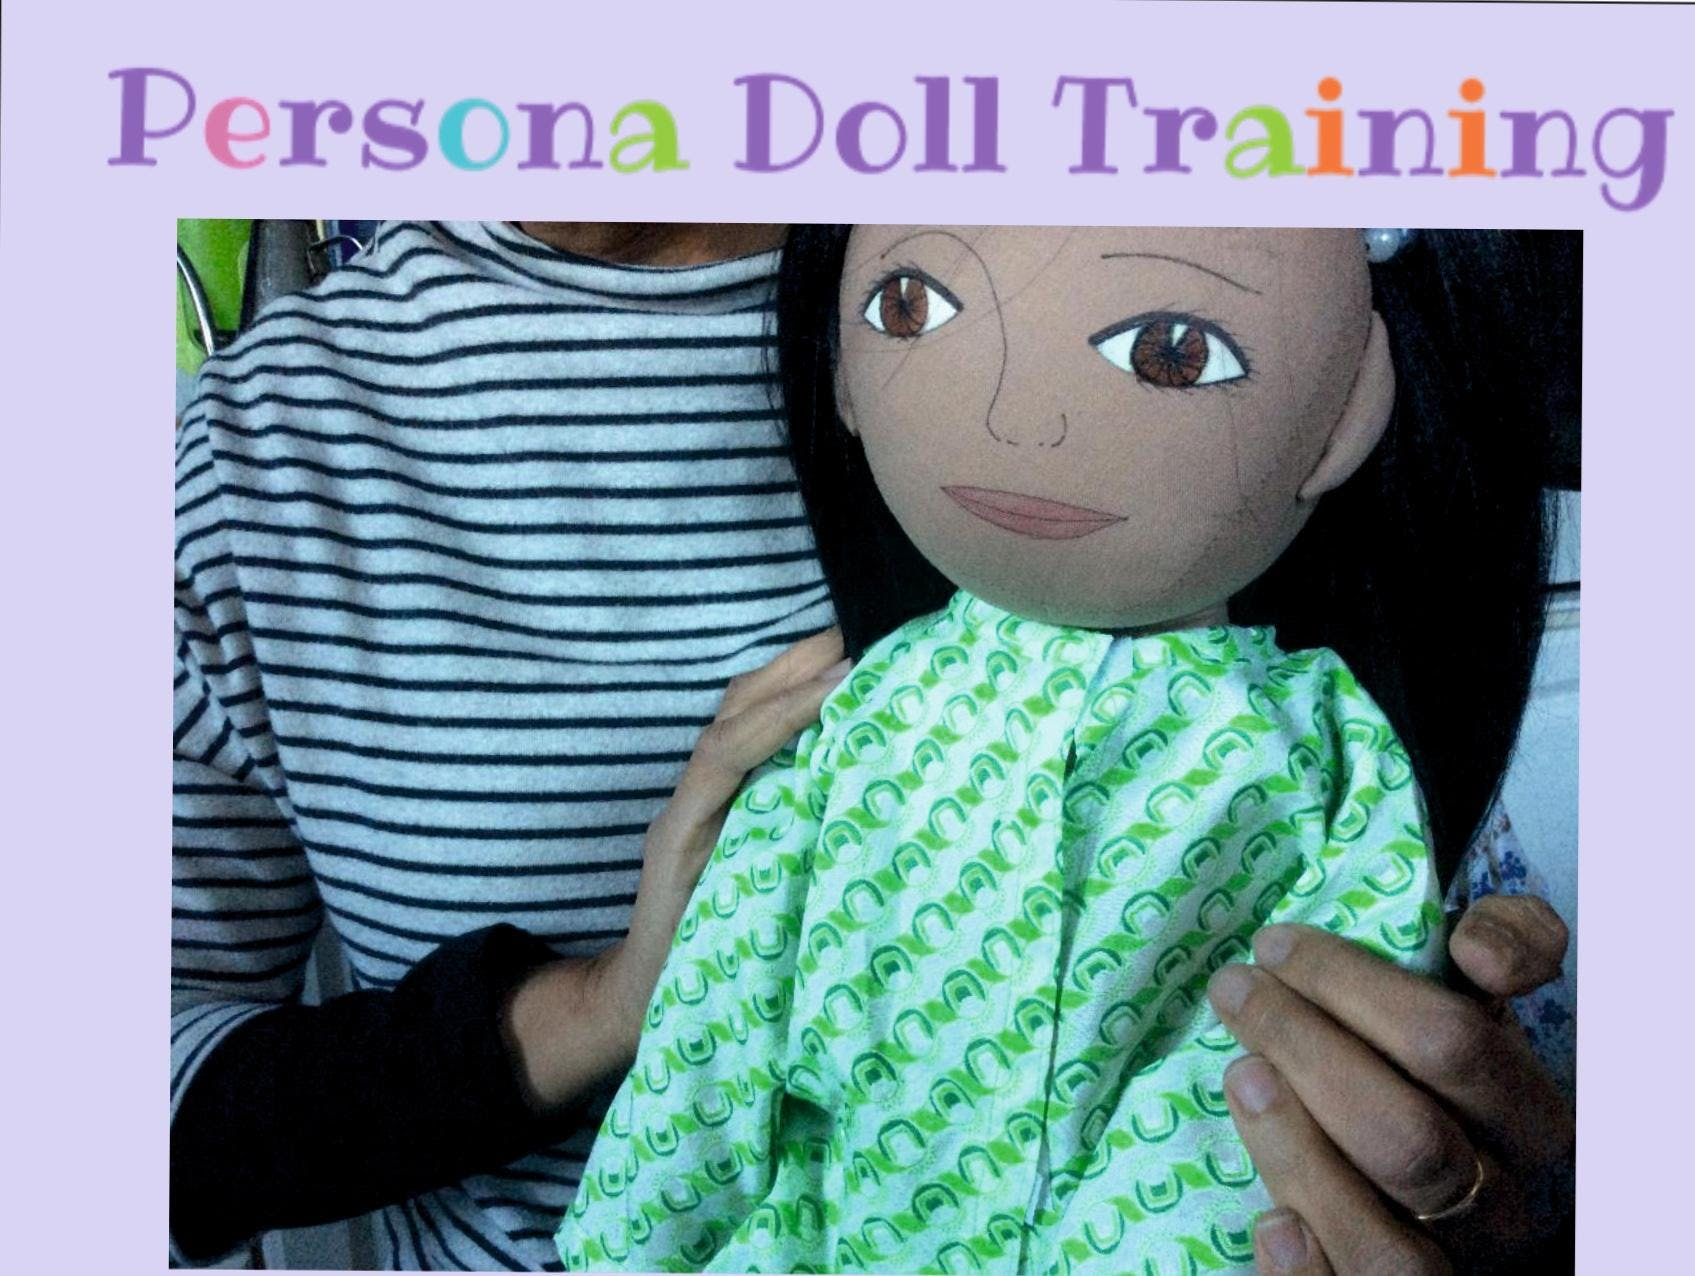 Persona Doll Equalities Training